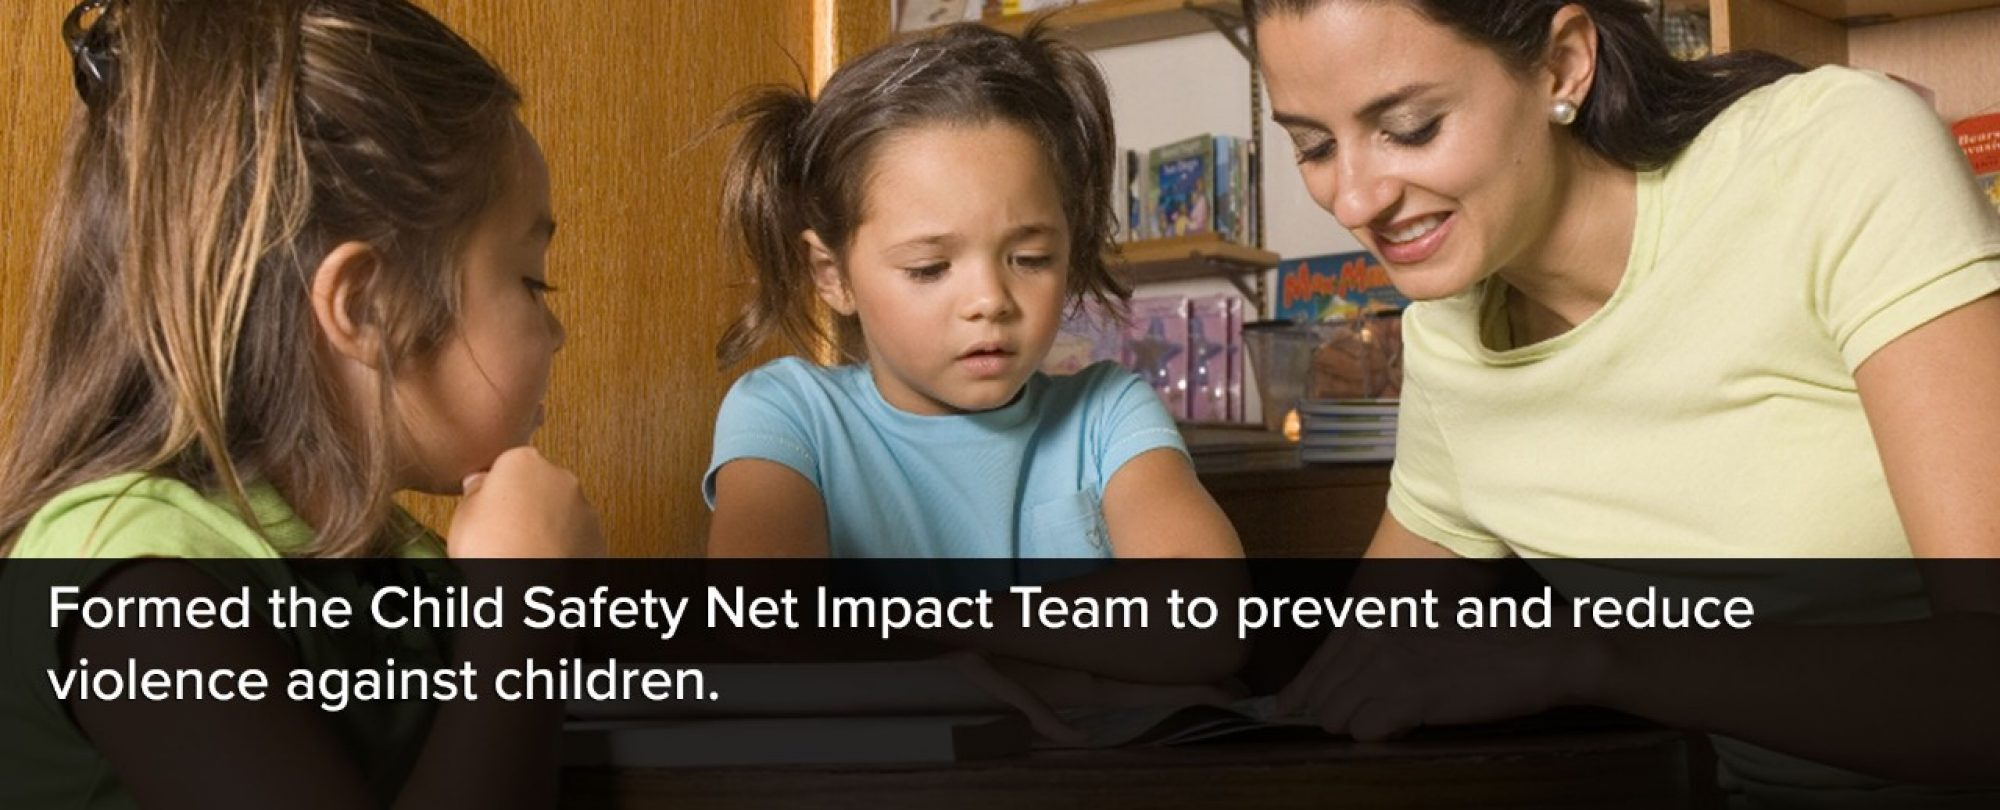 Photo of caregiver with two young girls. Denver formed the Child Safety Net Impact Team to prevent and reduce violence against children.